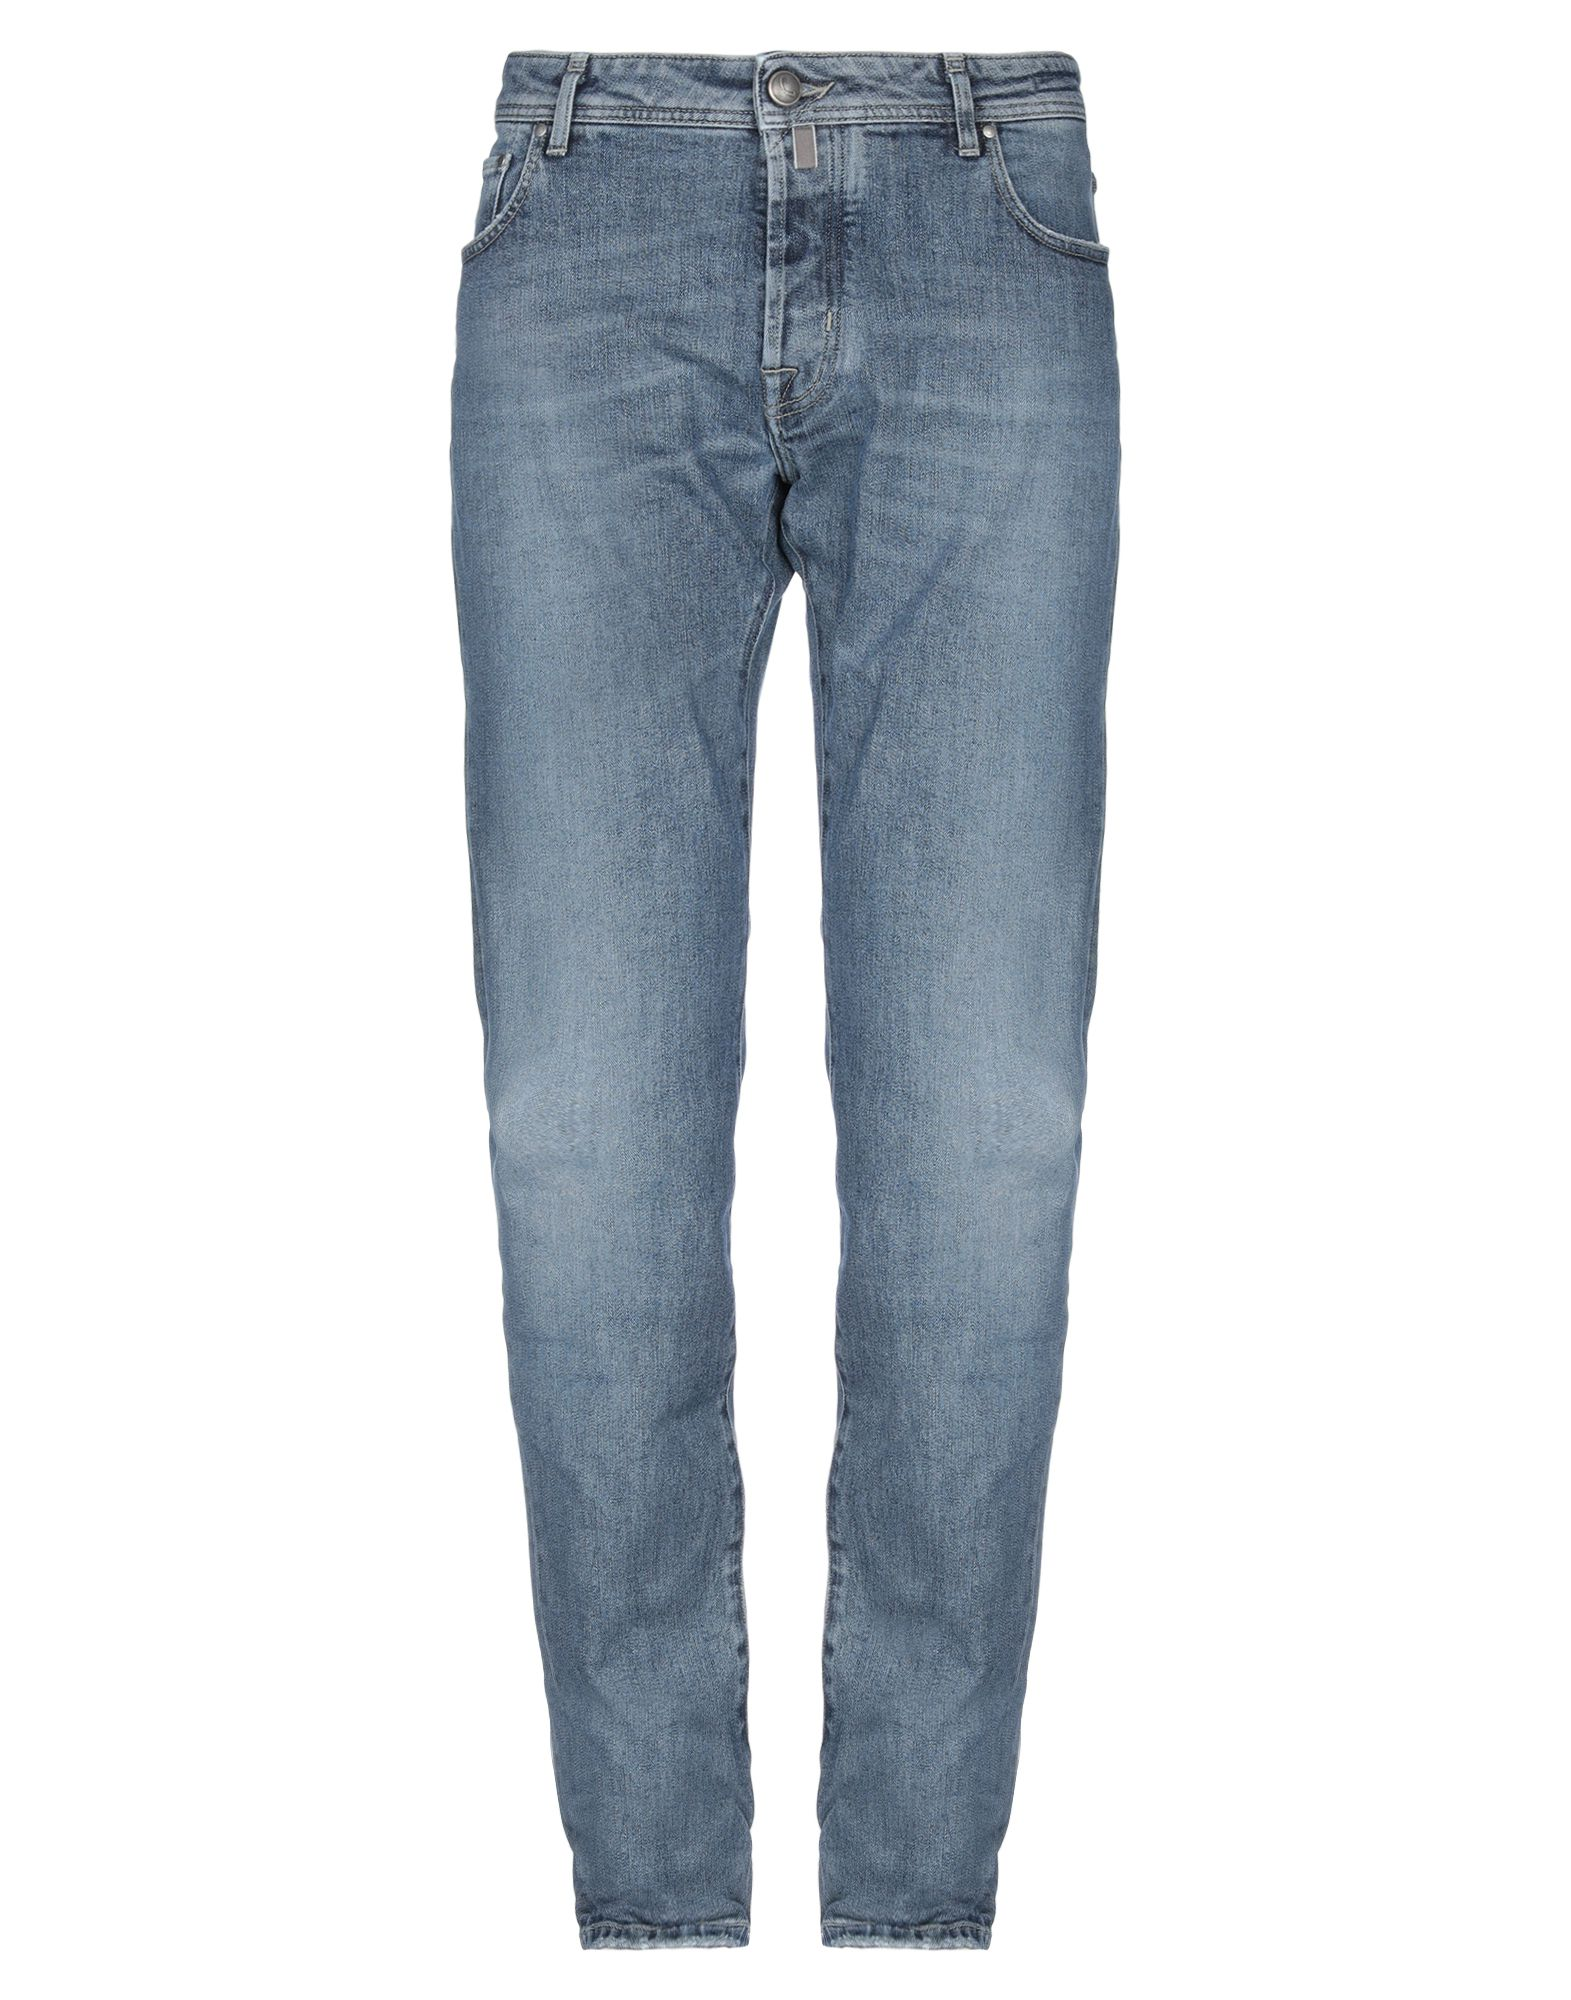 JACOB COHЁN Denim pants - Item 42816670